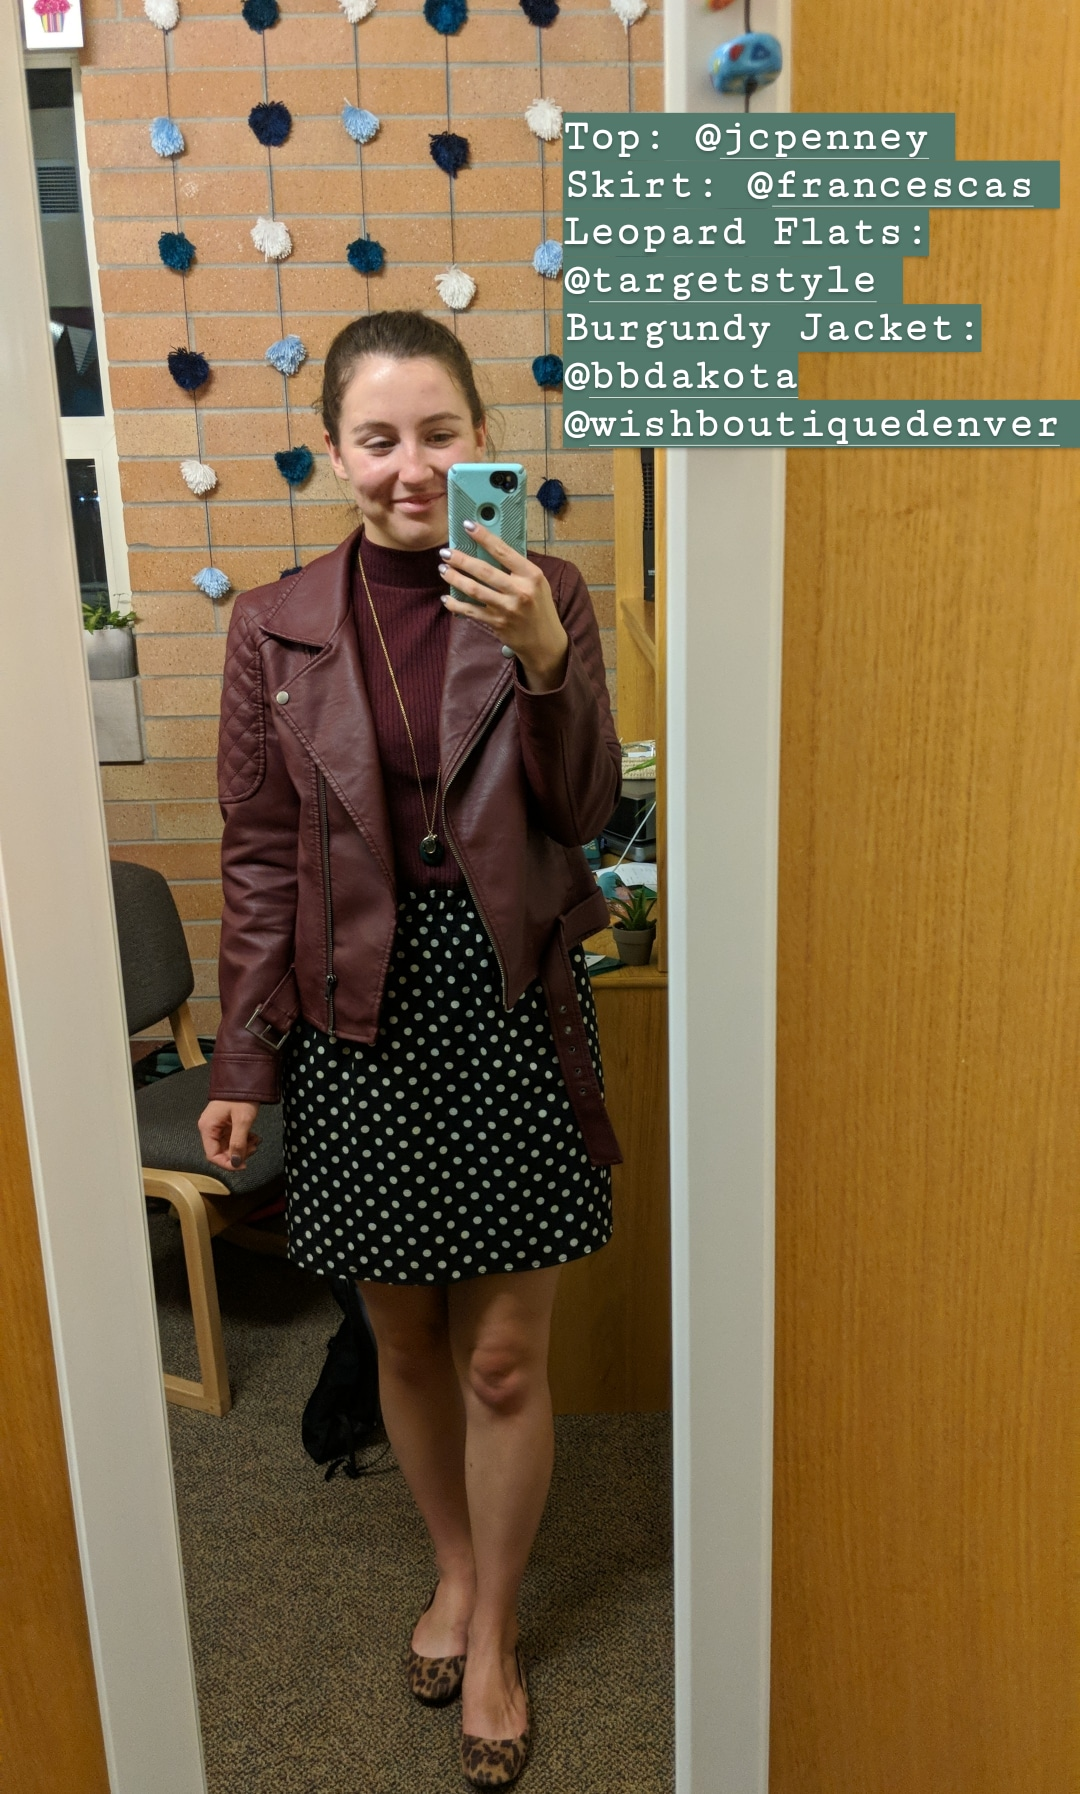 burgundy jacket, polka dot skirt, pattern mixing, leopard flats